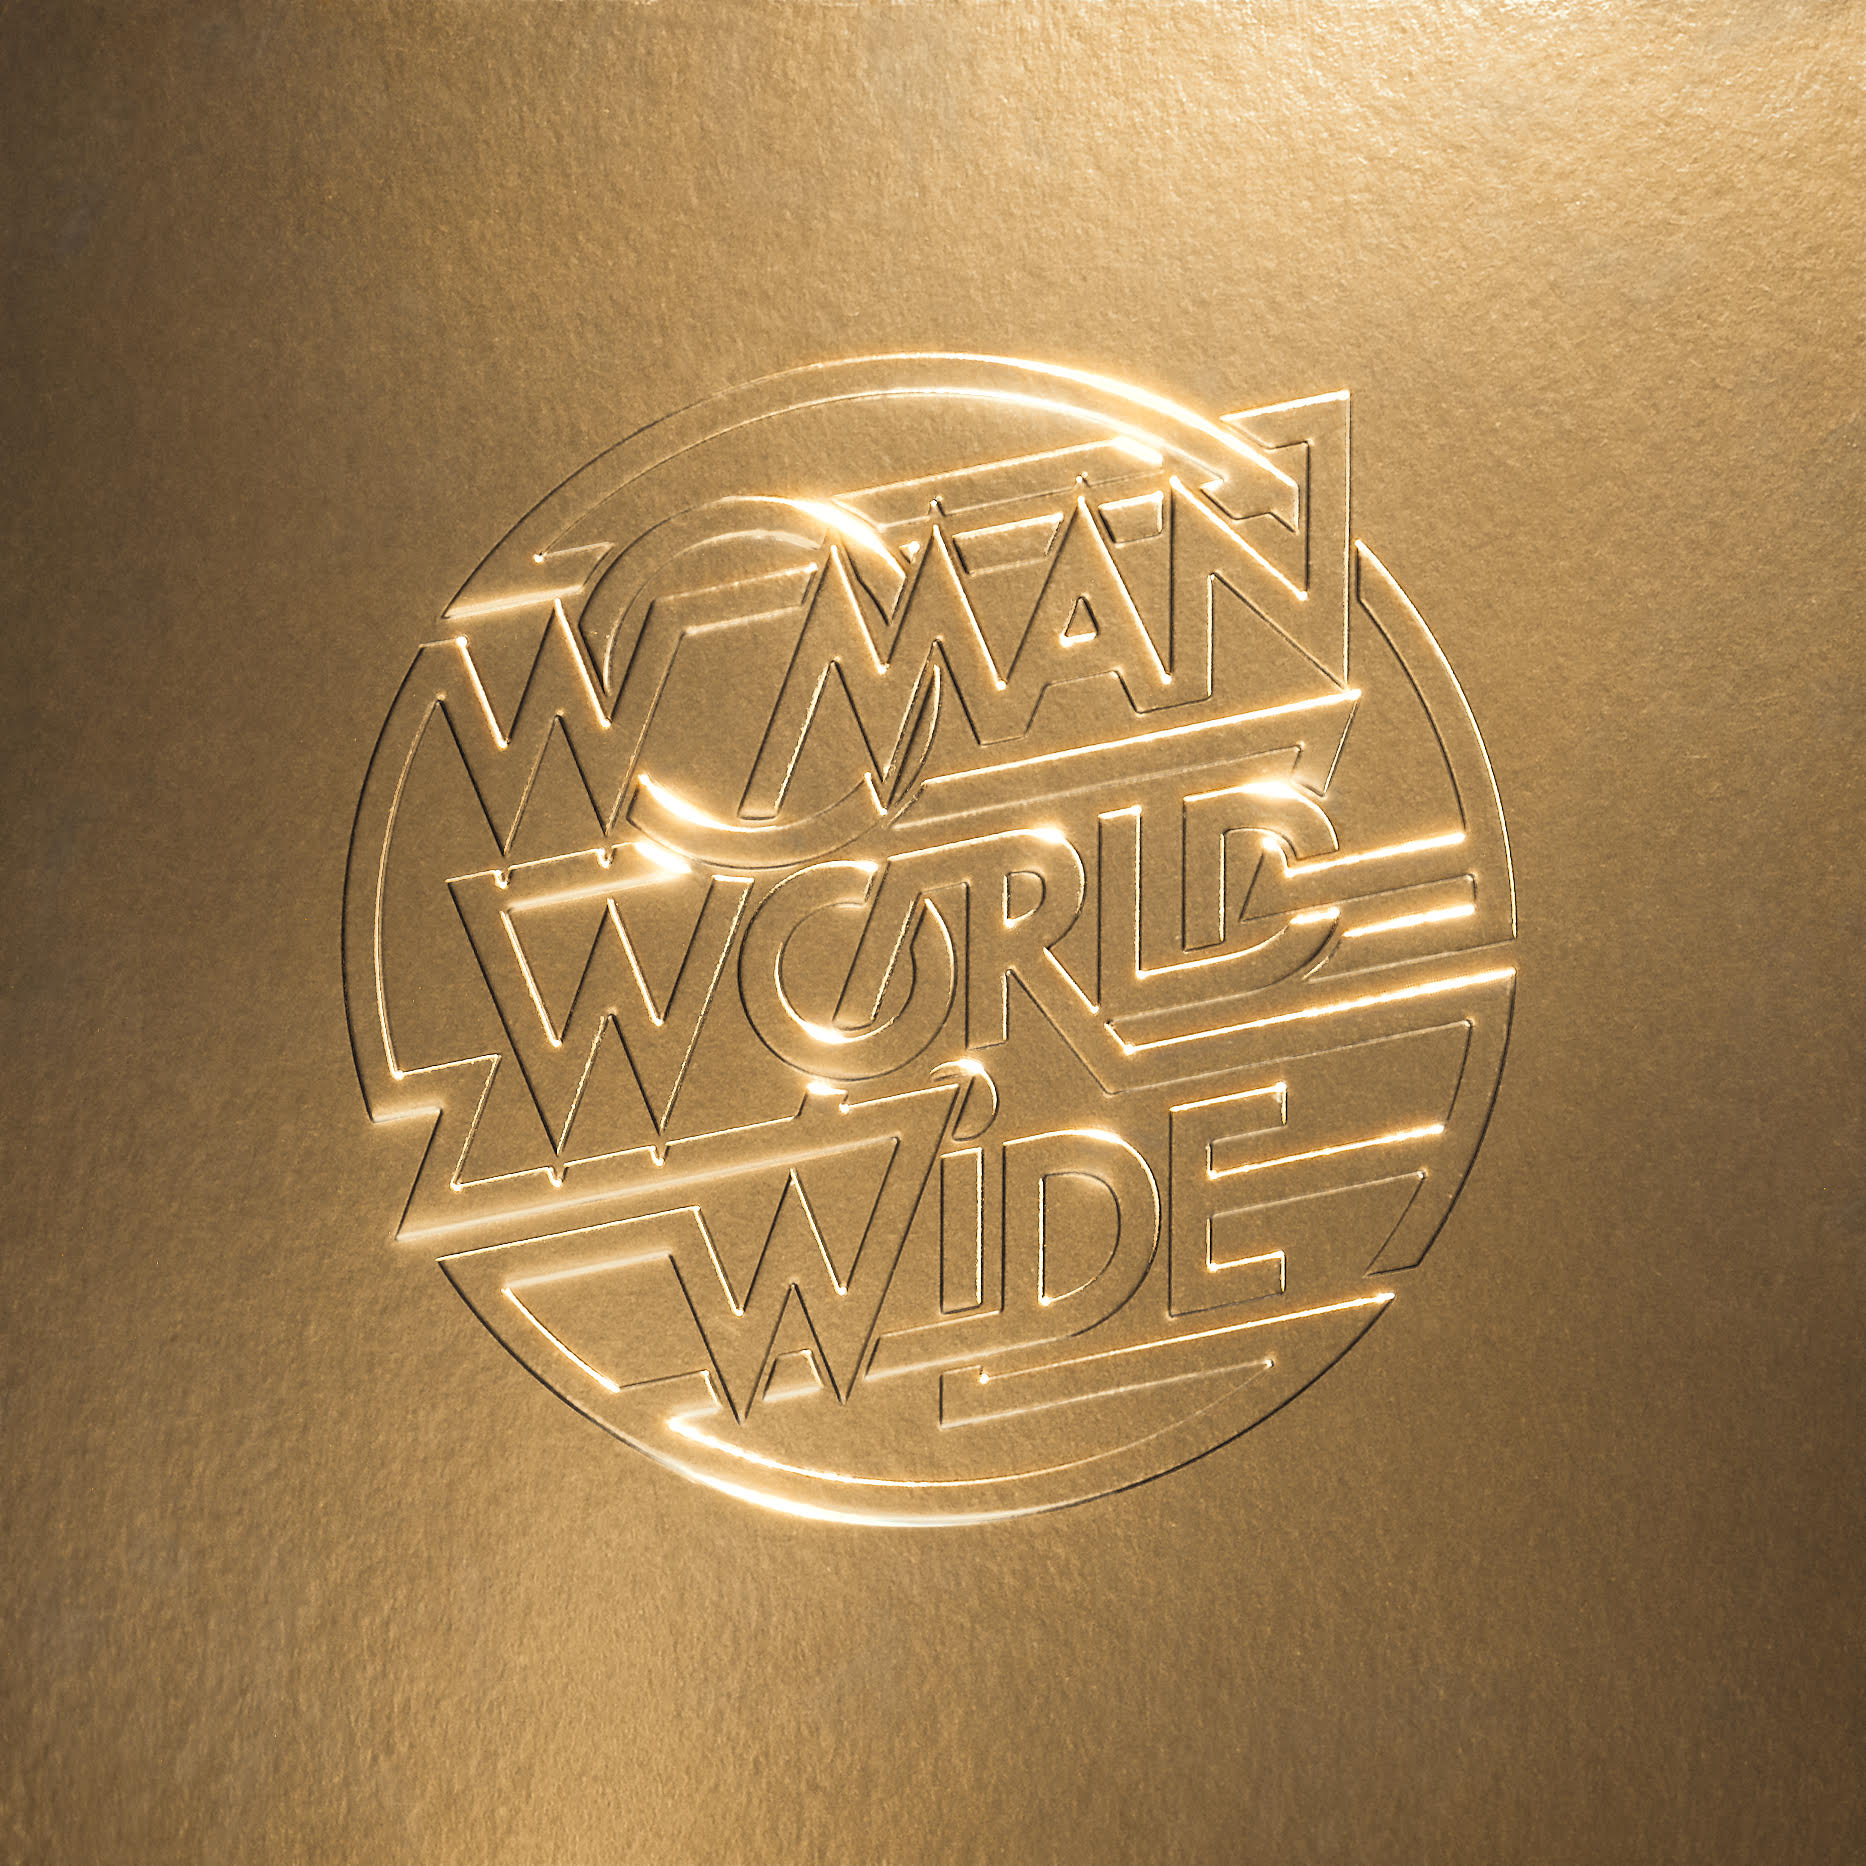 Justice Woman Worldwide Review For Northern Transmissions